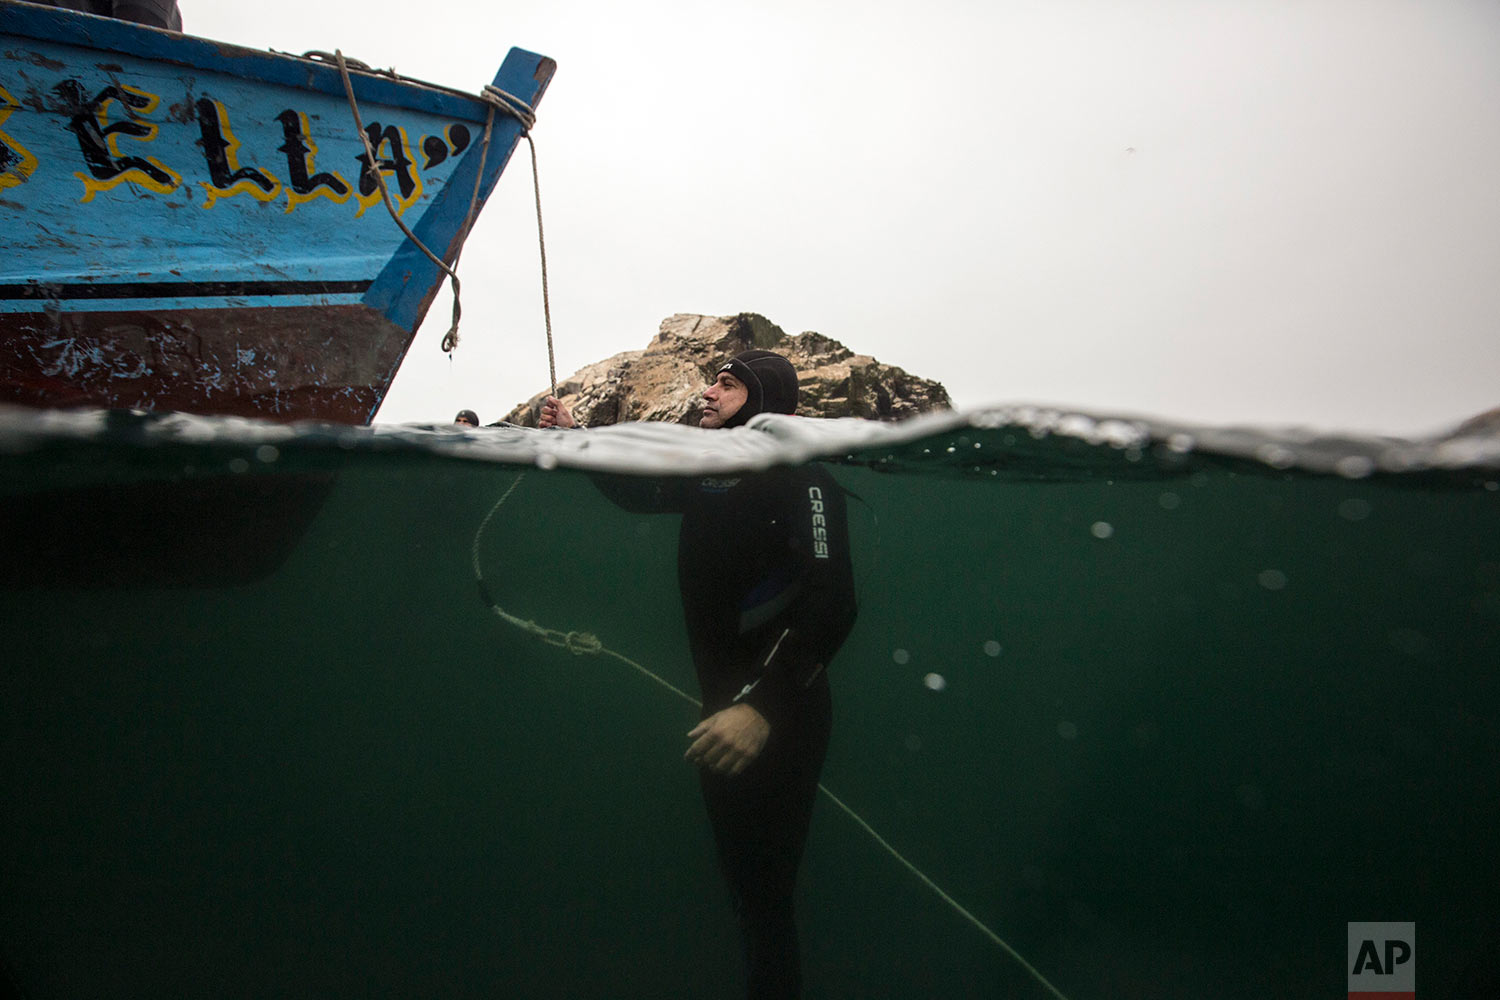 A diver stays afloat in the Pacific Ocean at the end of an exploration excursion of a sunken ship close to the Ancon coast, near Lima, Peru, Sunday, May 27, 2018. The El Ferrol, an old cargo ship, ran aground in 2005 and sank in 2007. (AP Photo/Rodrigo Abd)